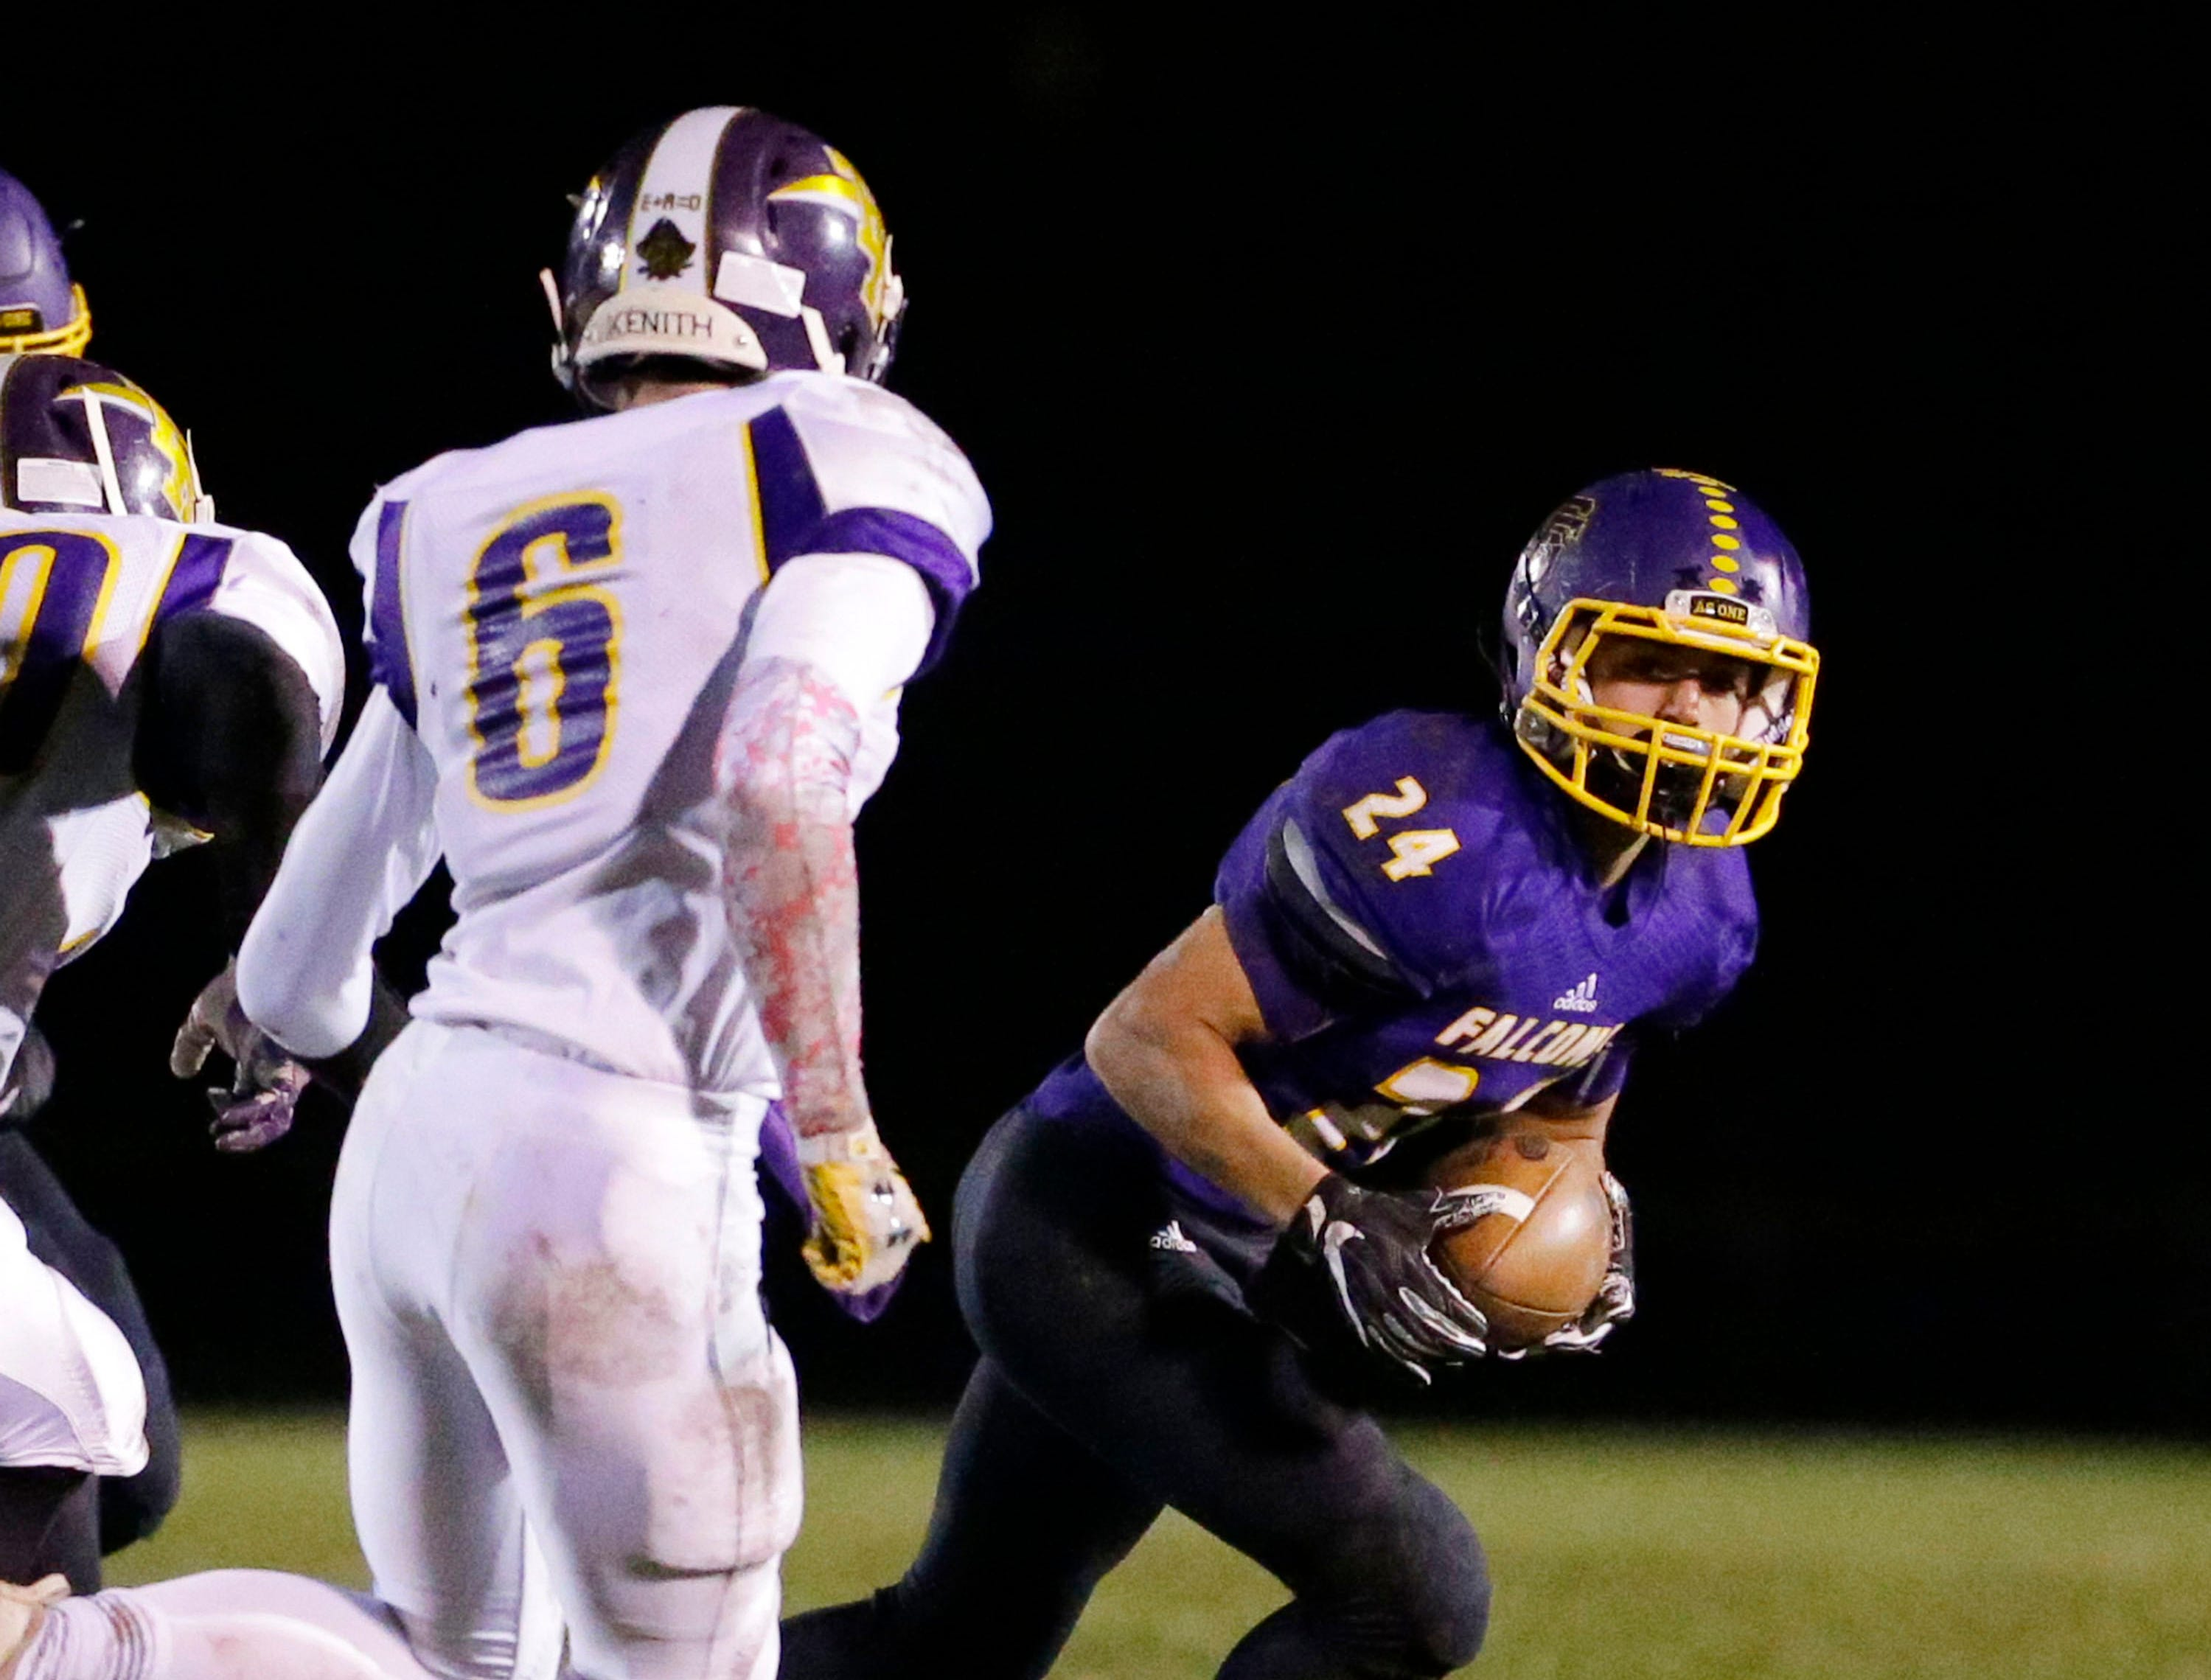 Sheboygan Falls' Mason Miller (24) carries the ball against Two Rivers, Friday, October 12, 2018, in Sheboygan Falls, Wis.